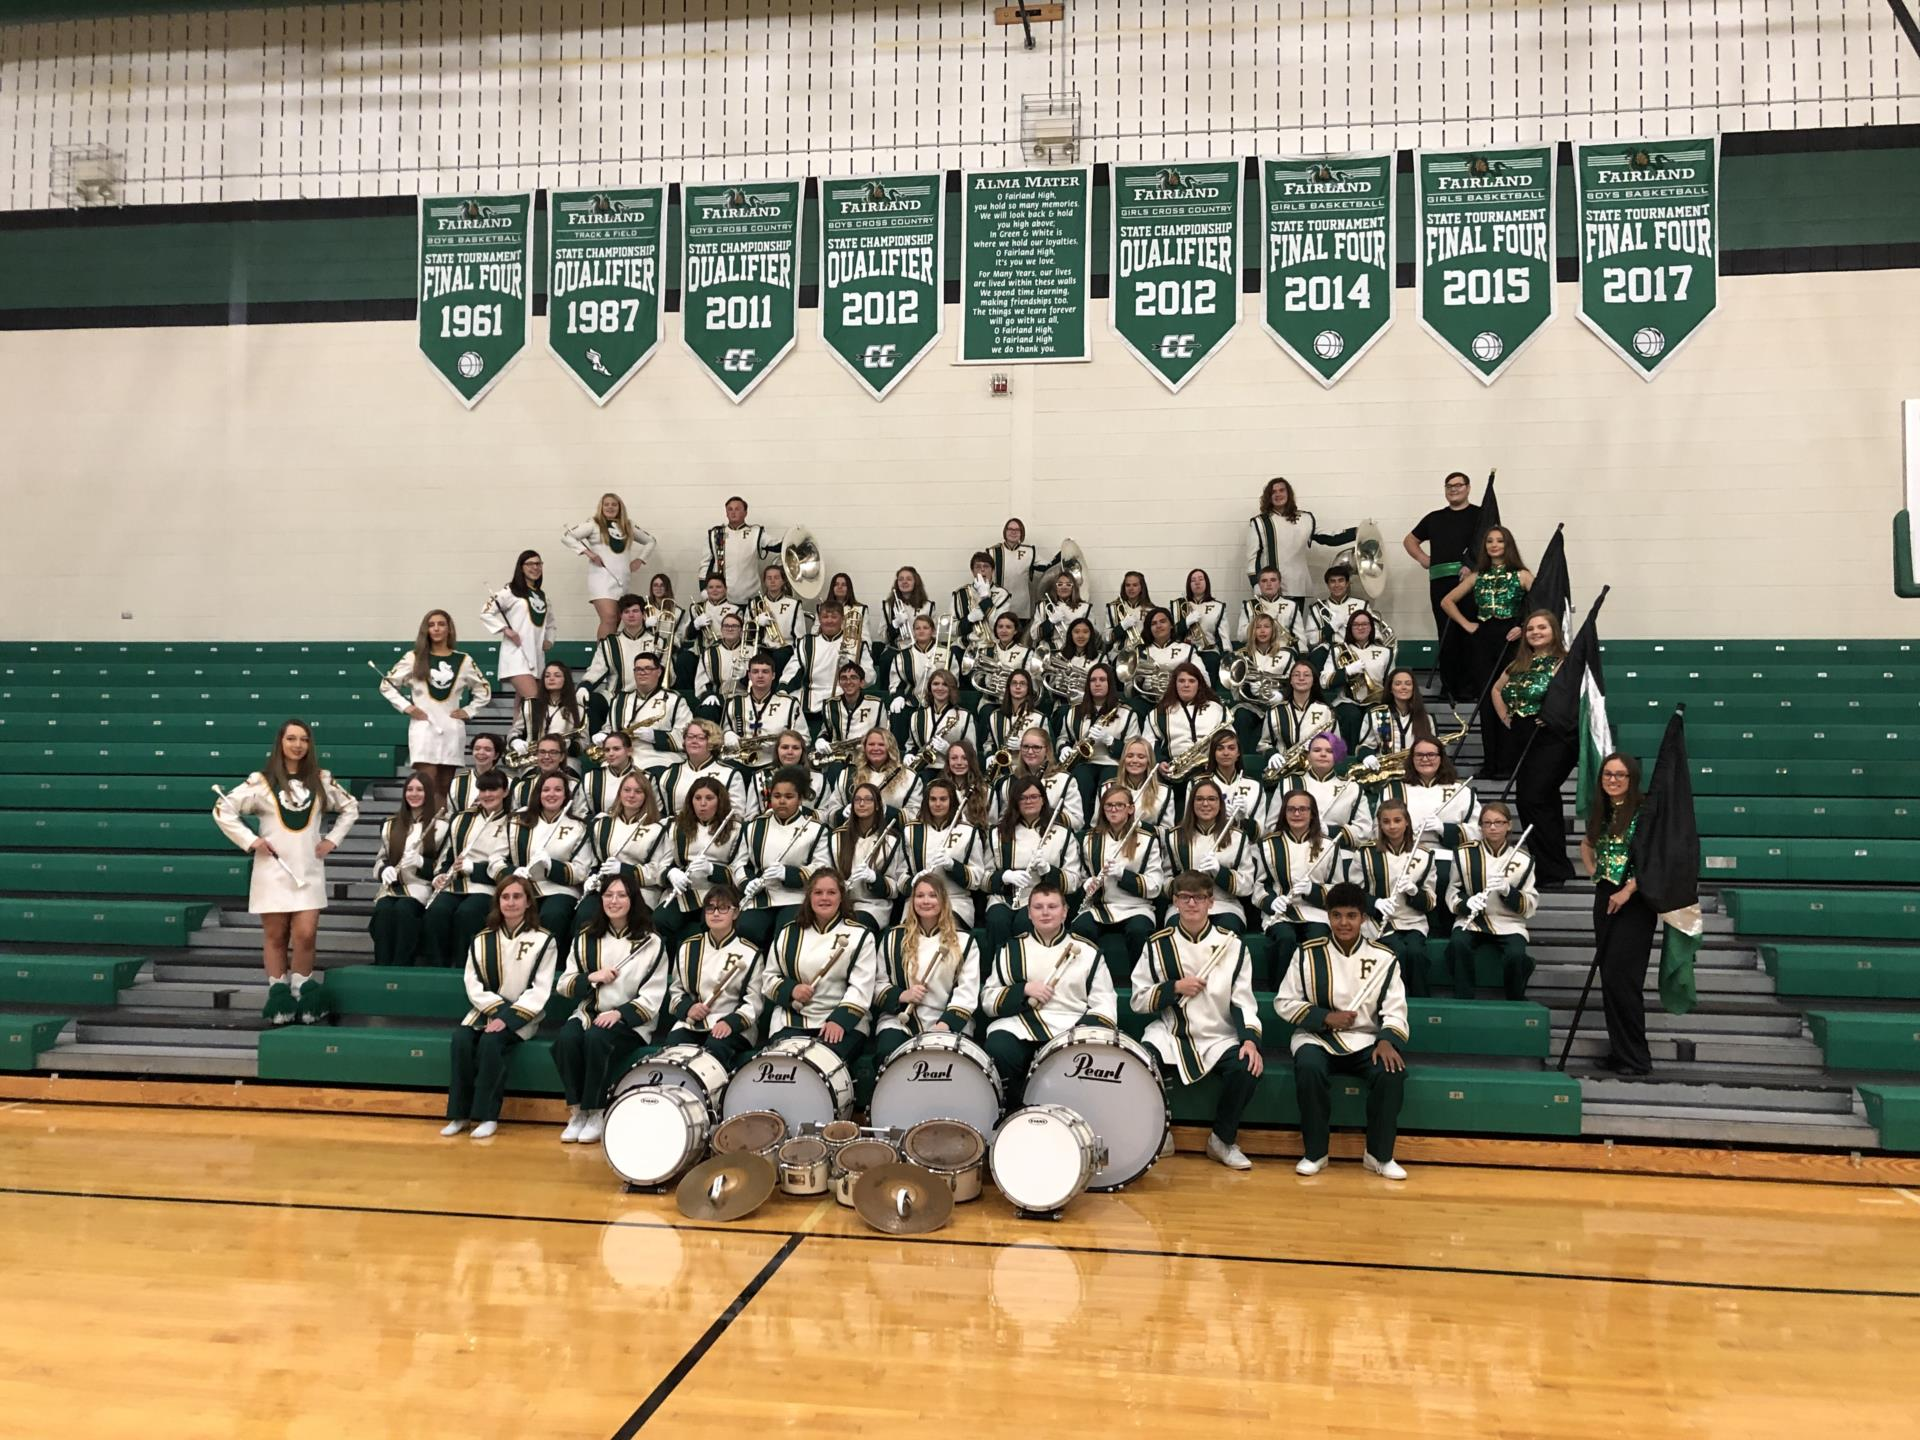 fairland marching band phote 2019